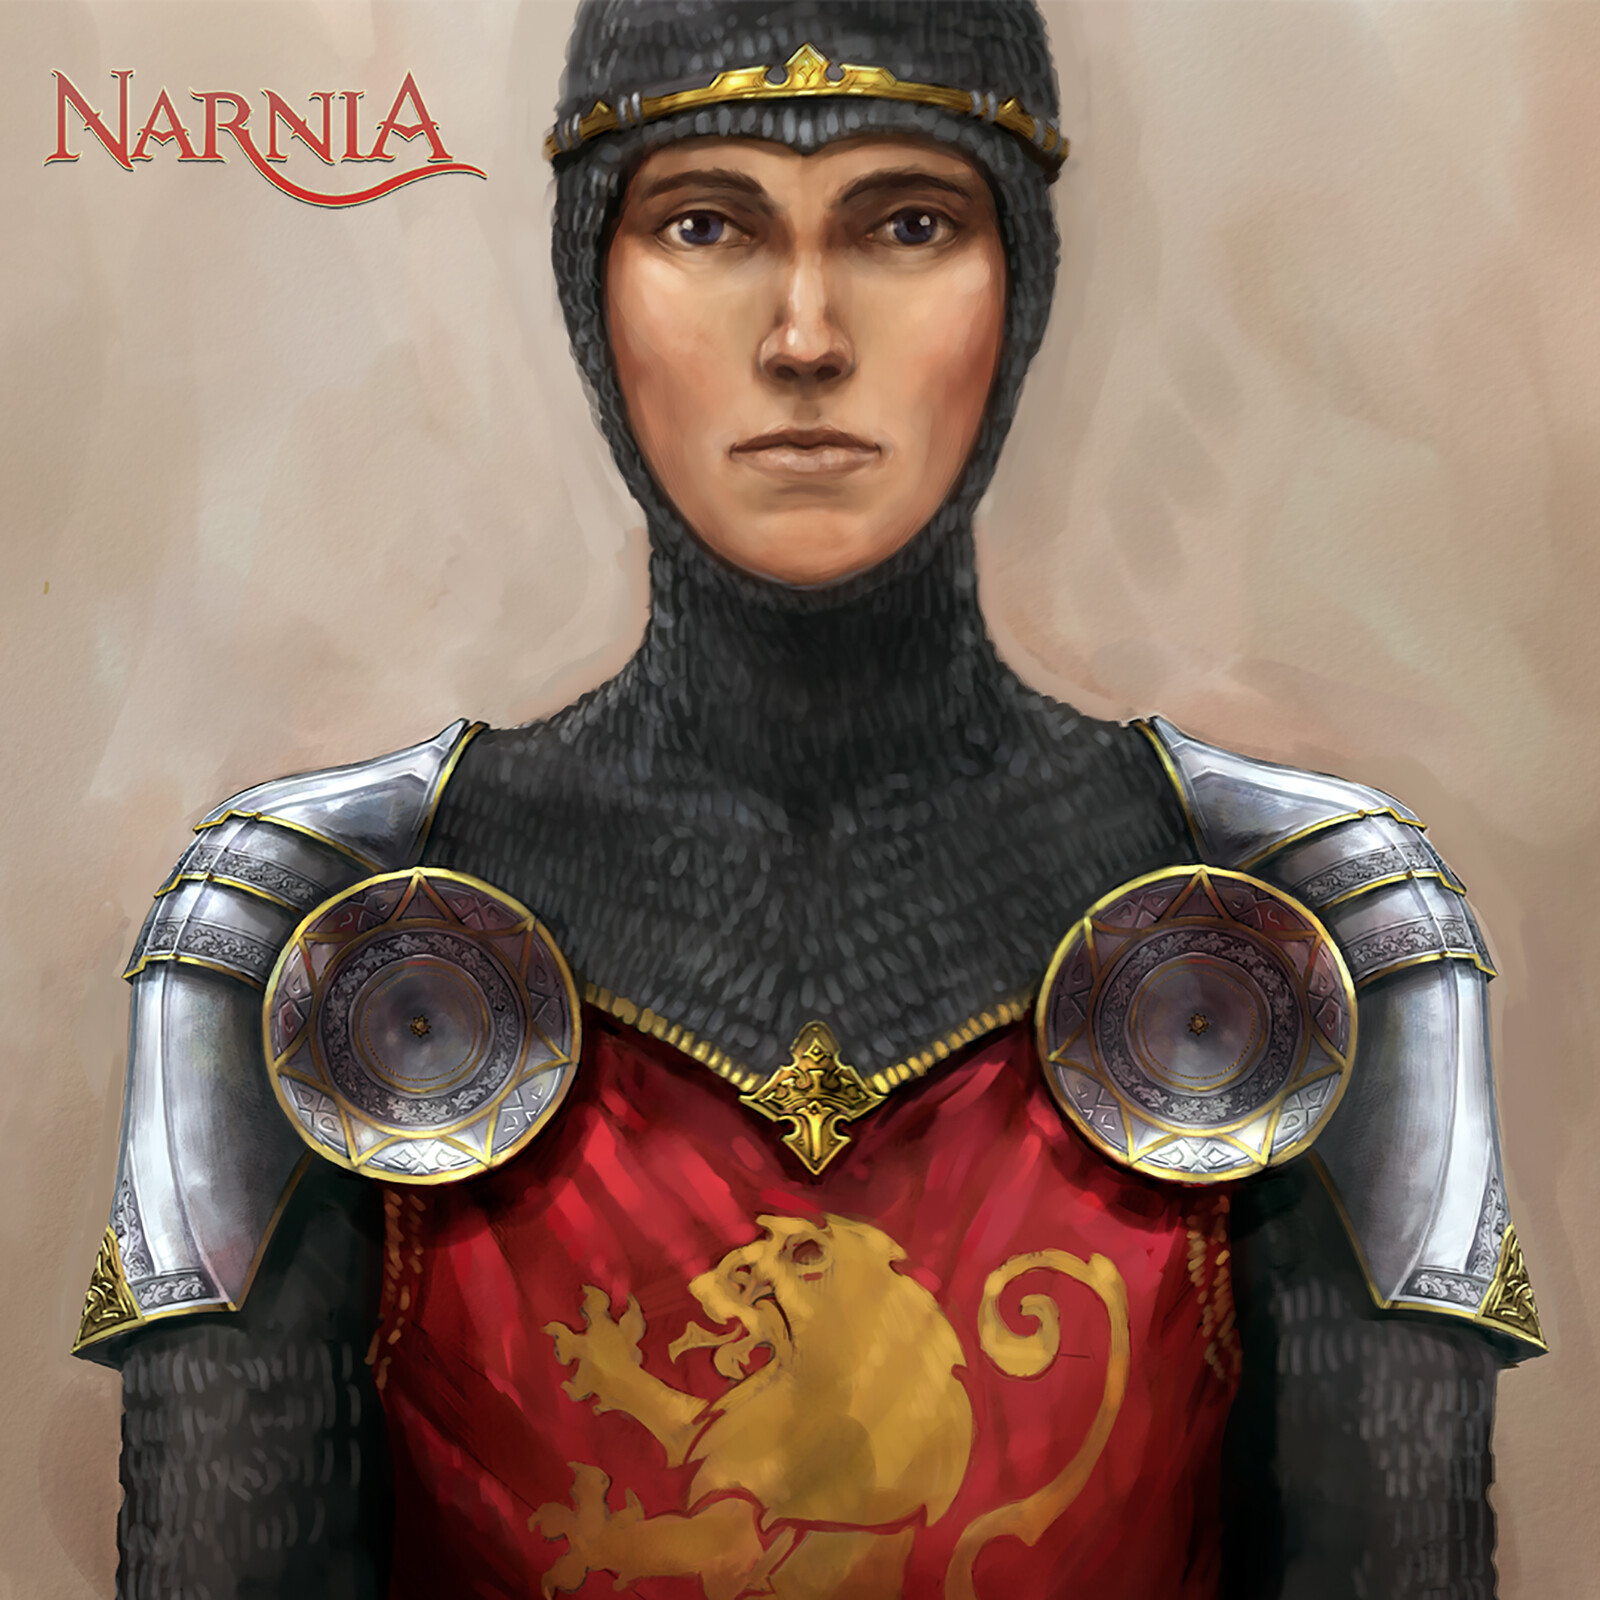 Narnia: King Peter's Armory